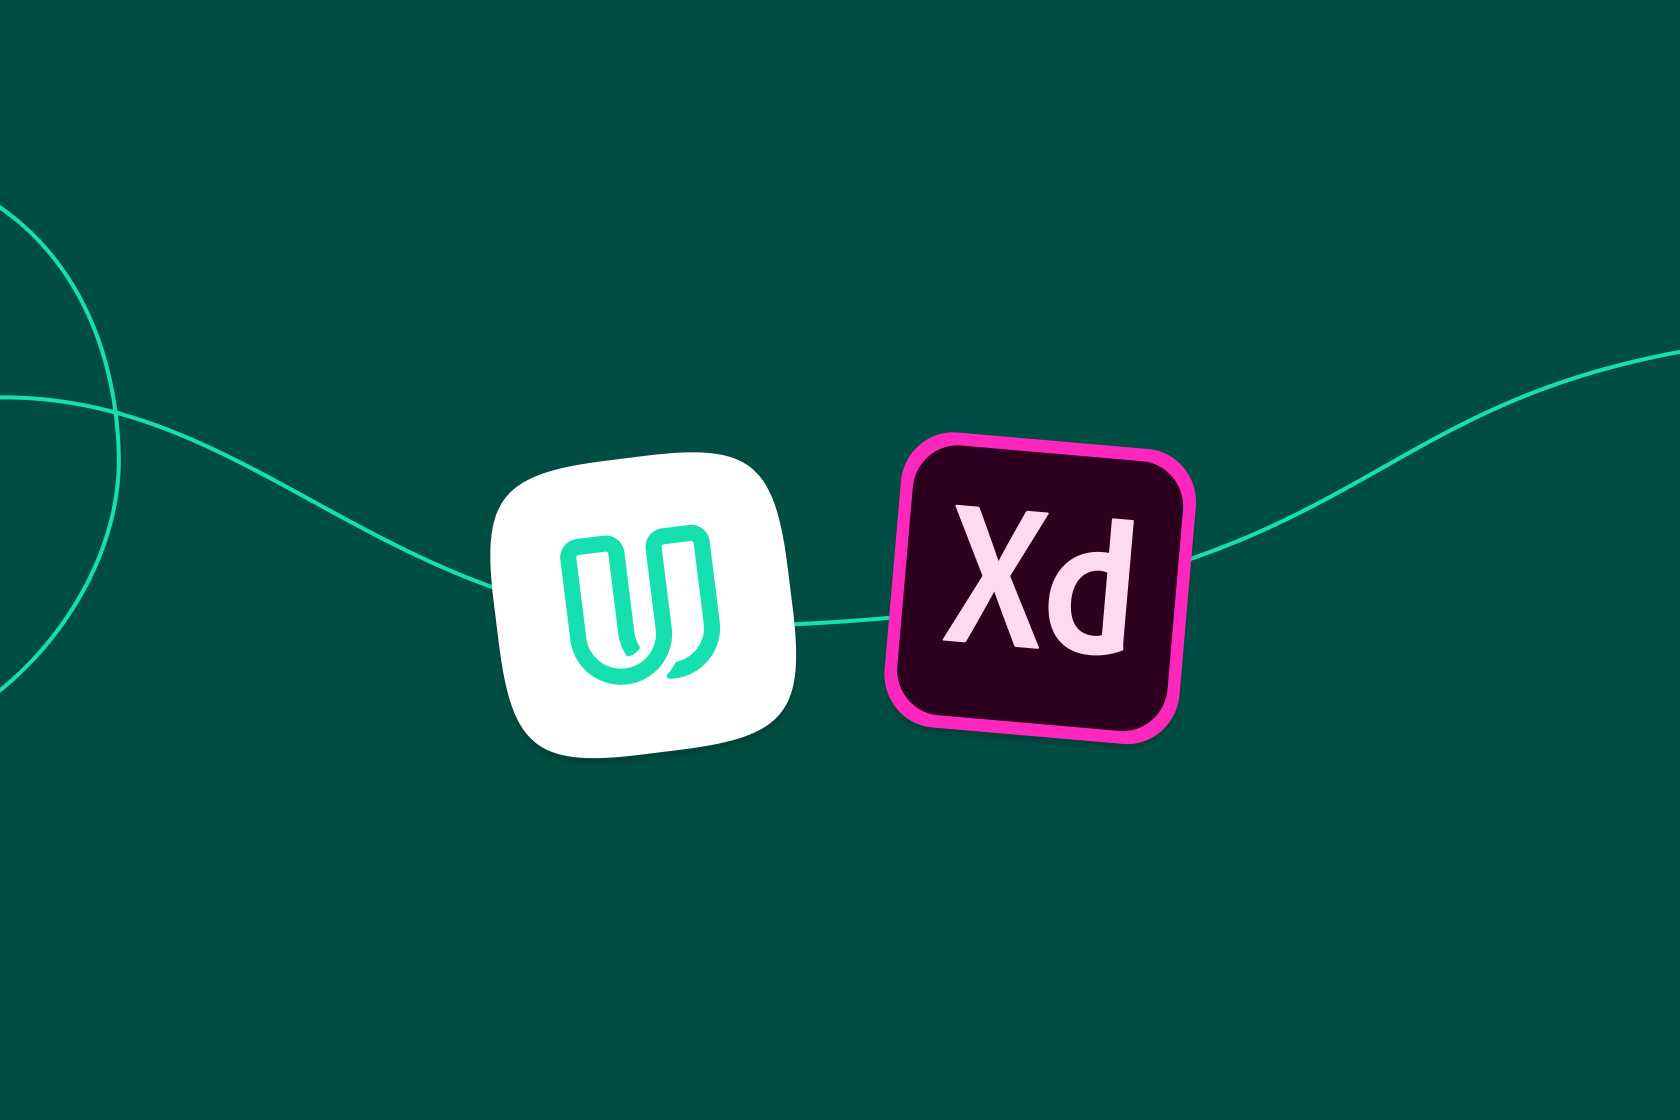 Userbrain and Adobe XD